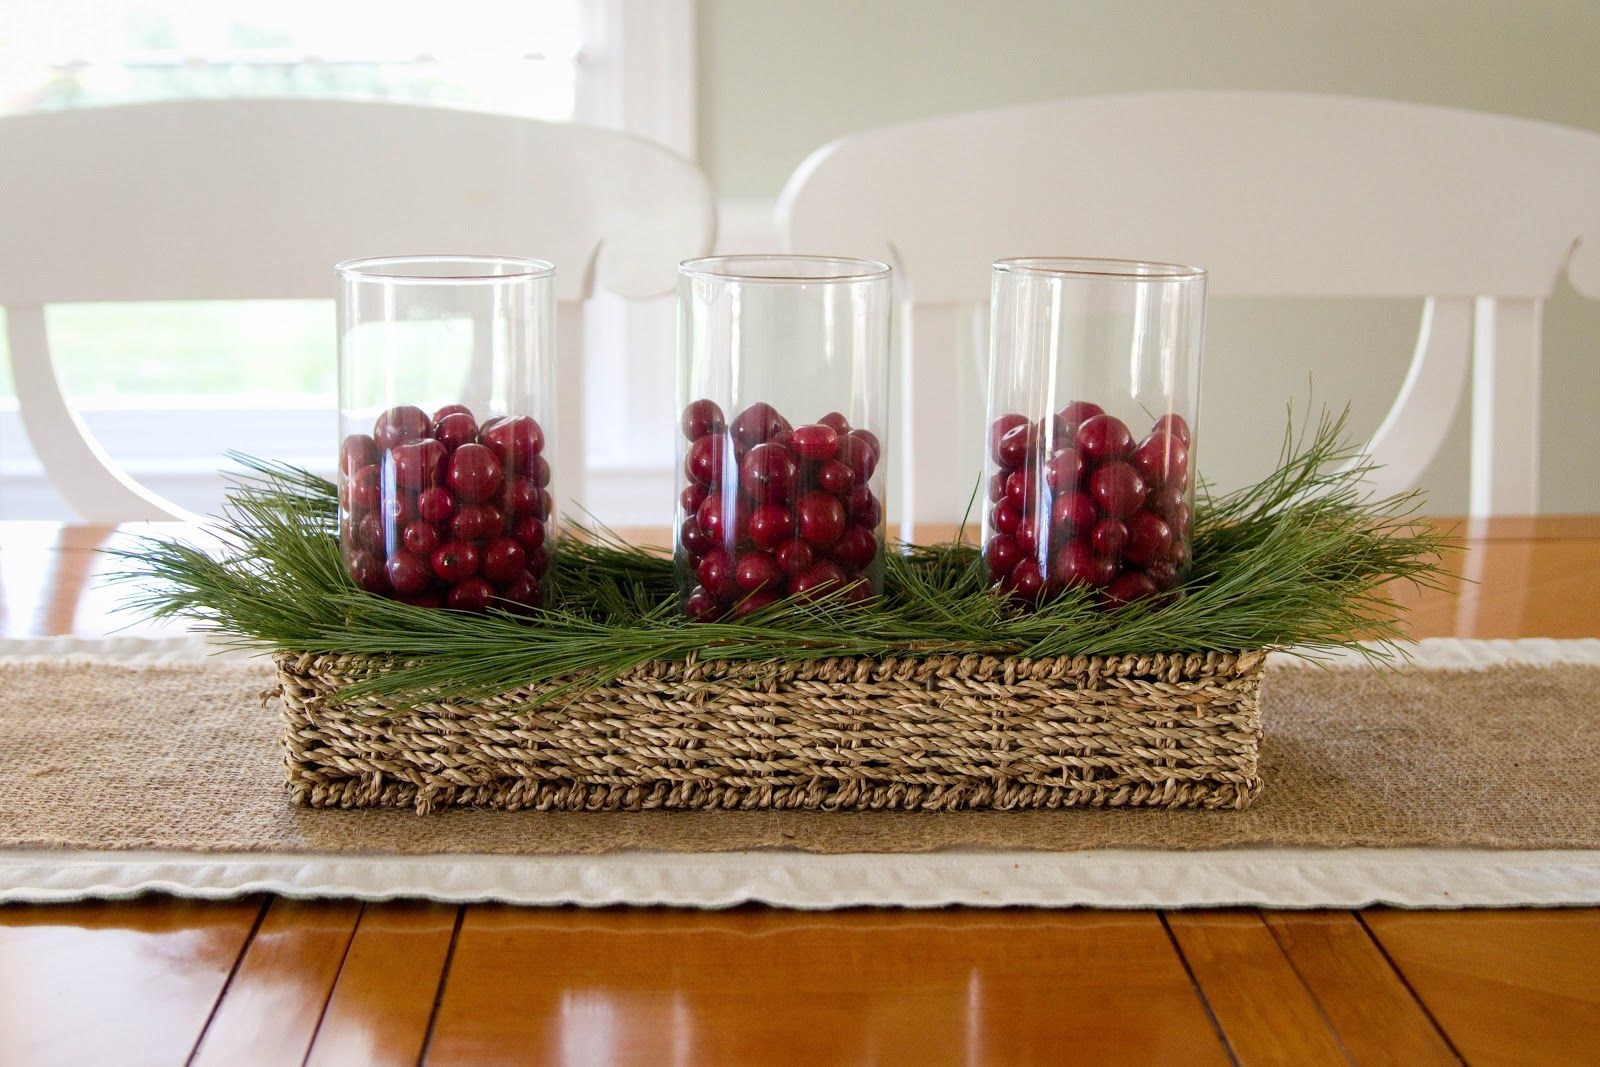 decorating your kitchen using kitchen table centerpieces is very